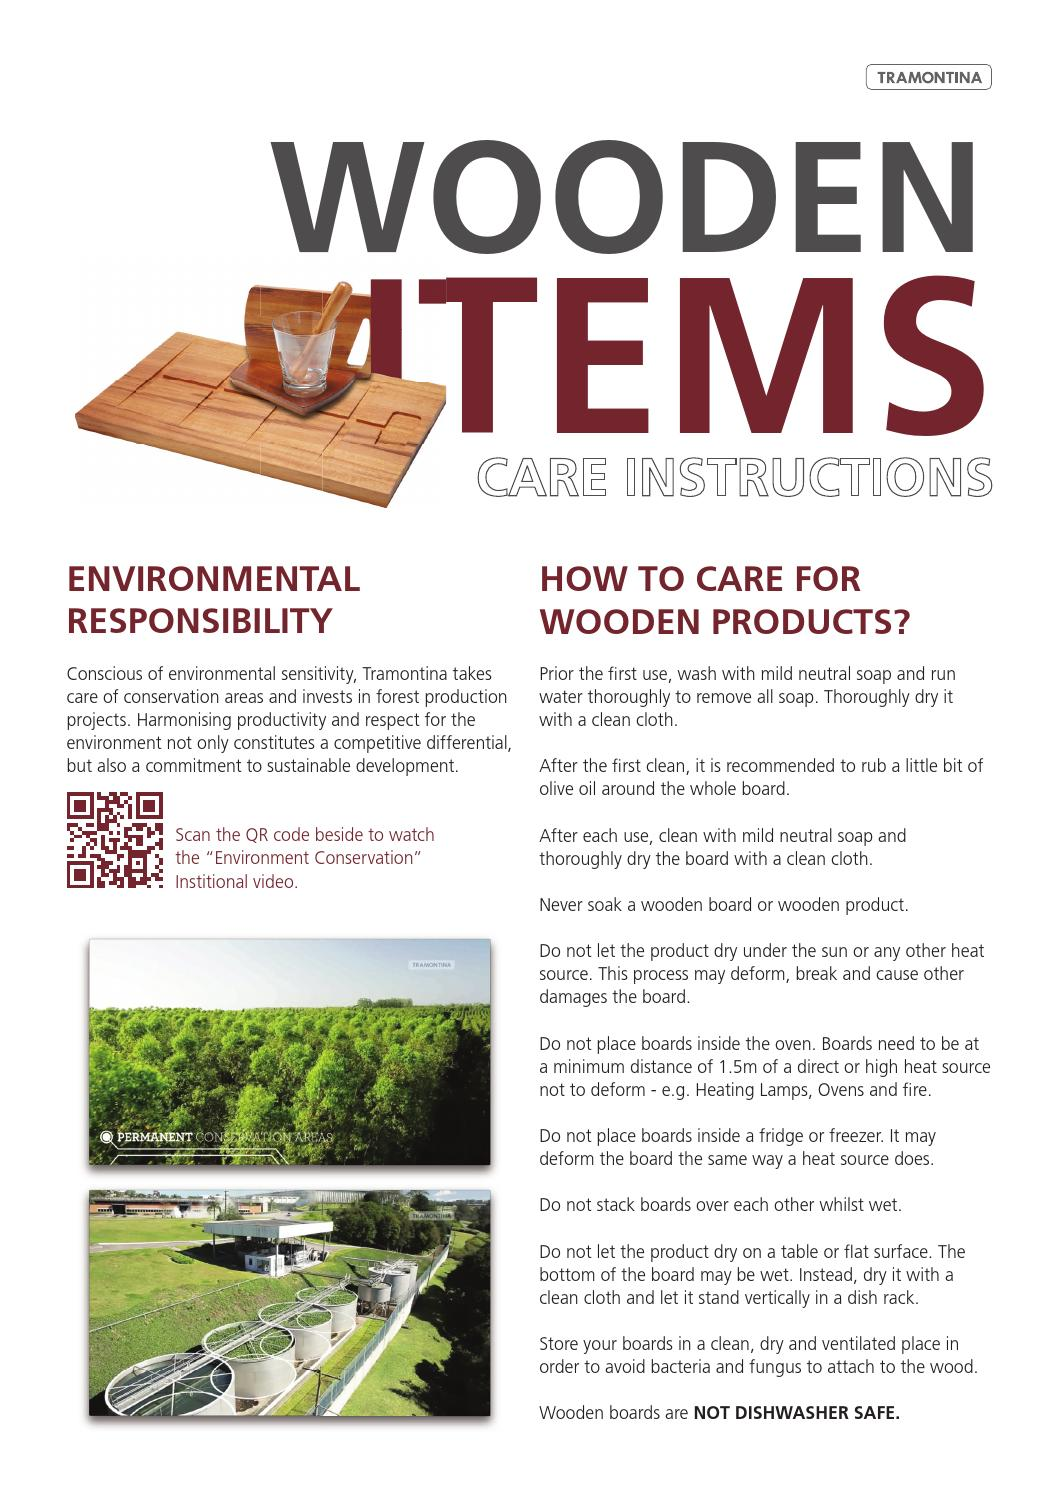 tramontina wooden items care instructions by tramontina australia